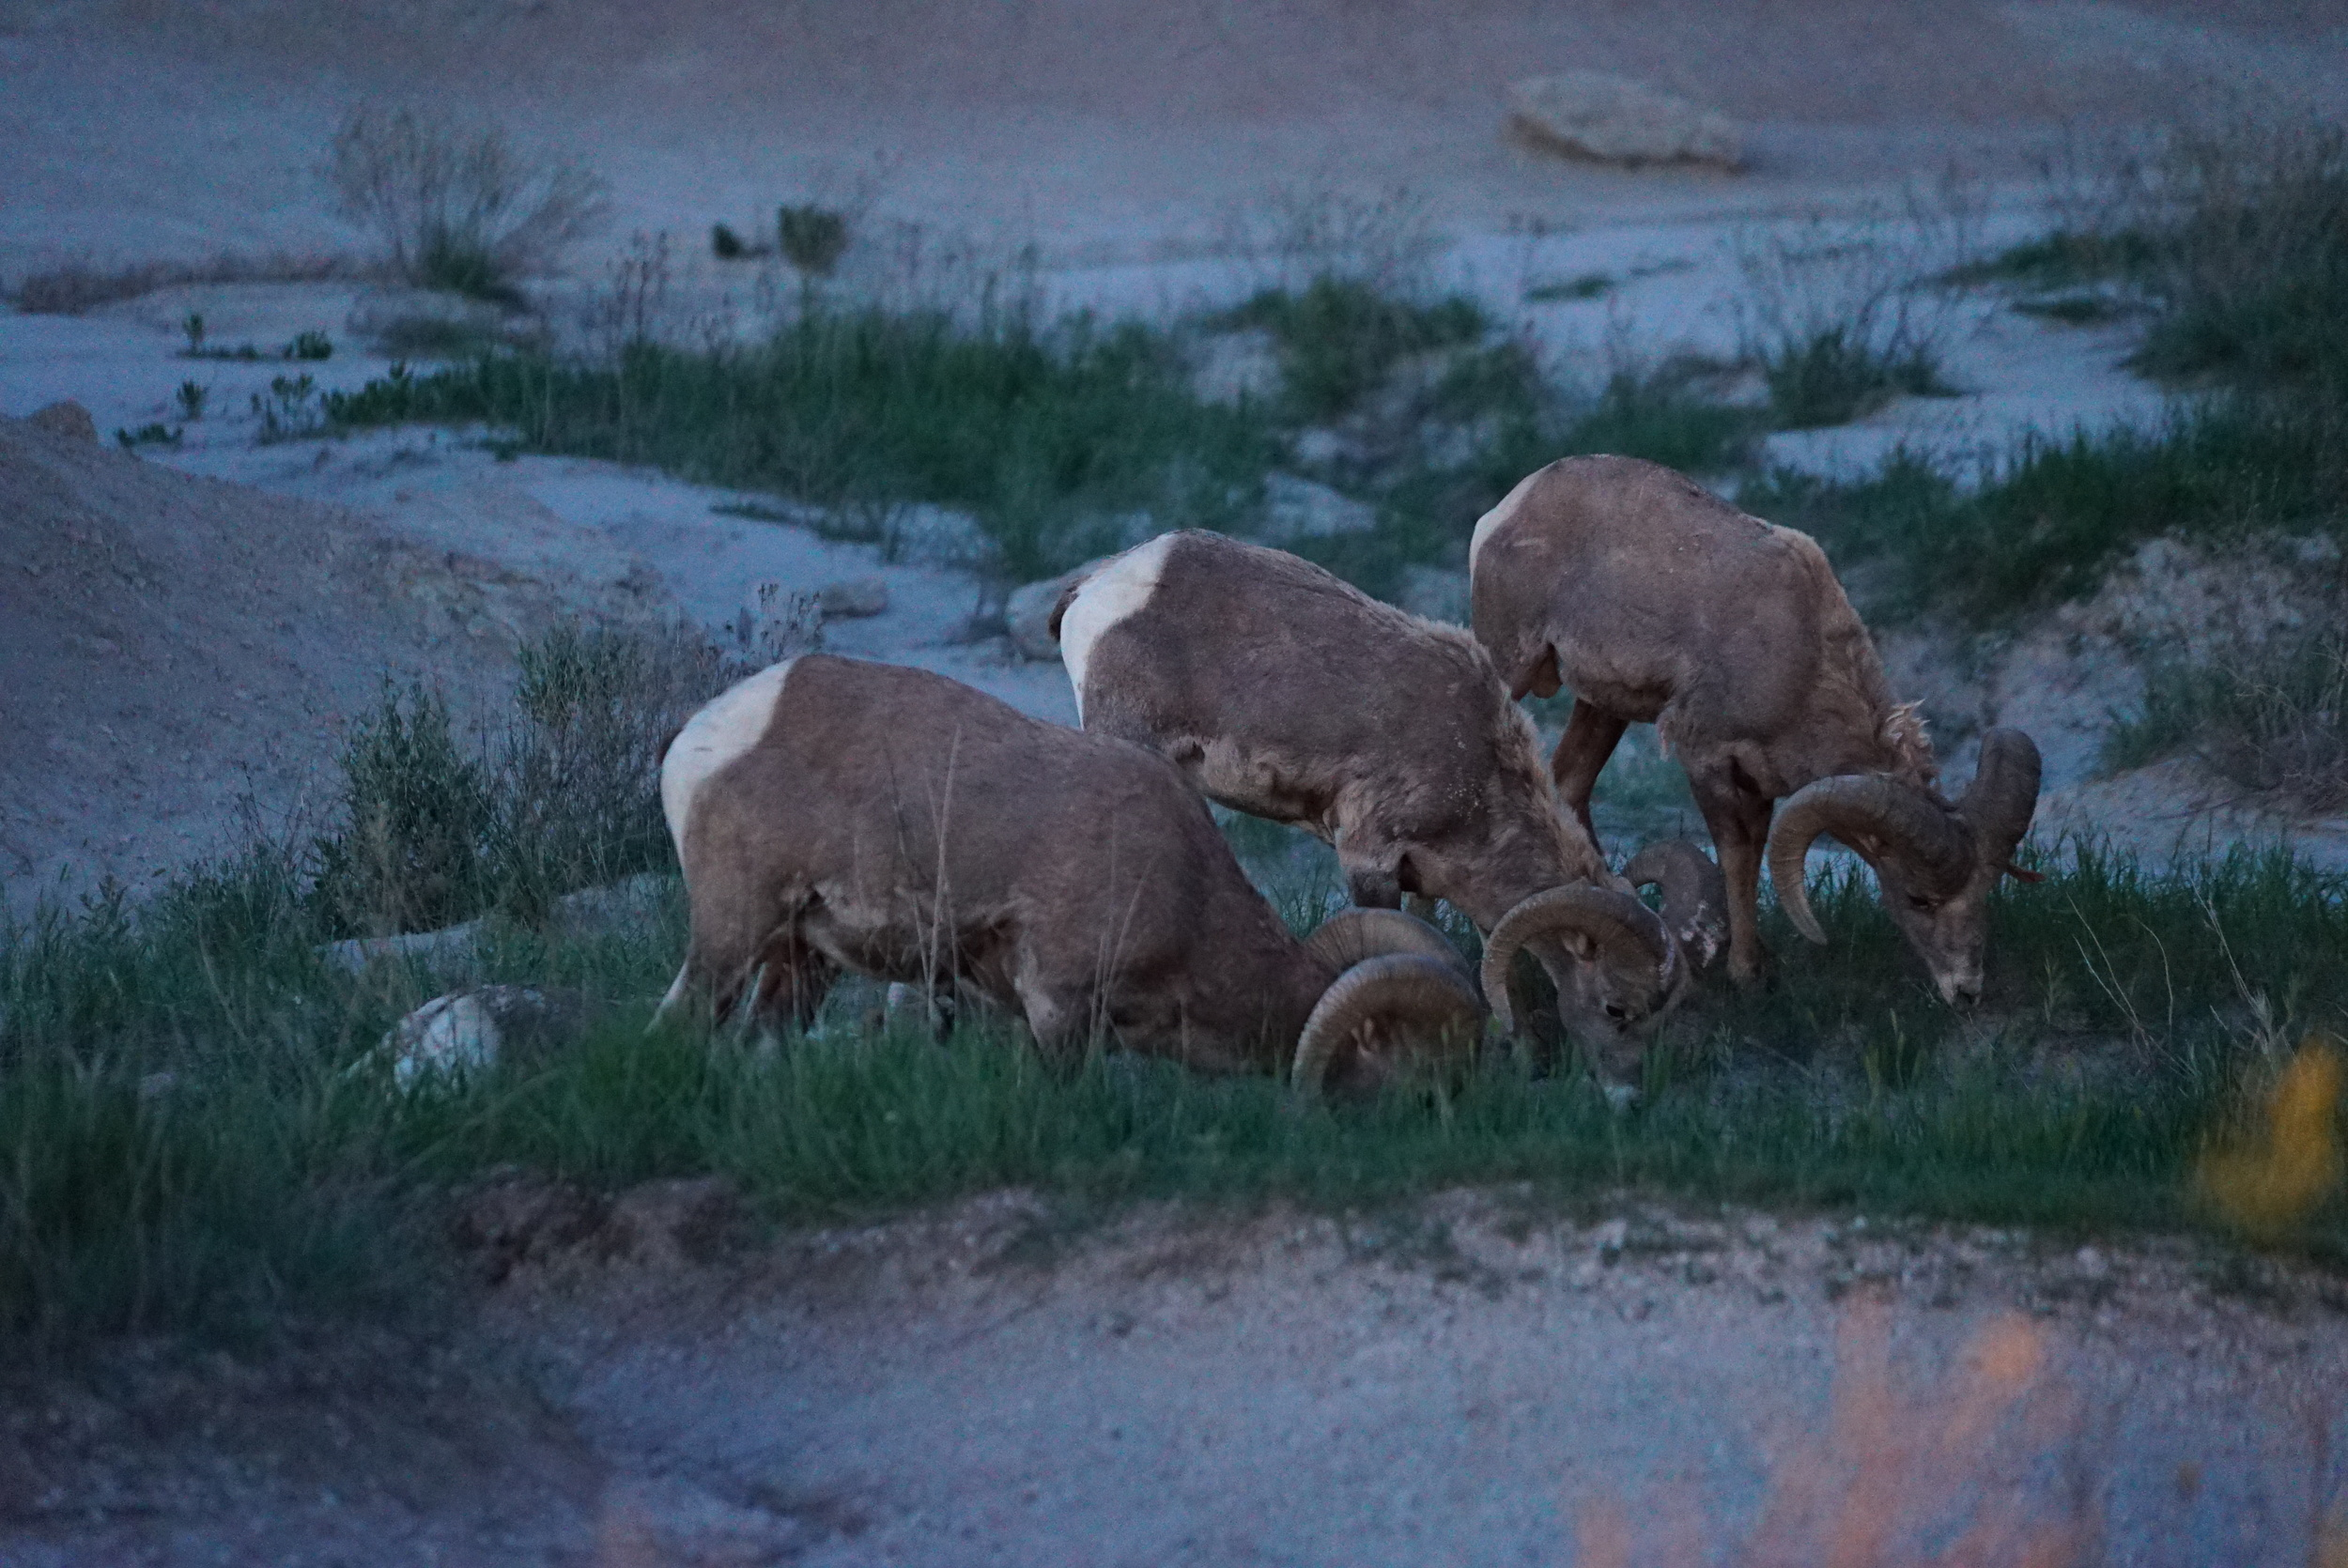 While scoping out locations in The Badlands, we encountered some of its inhabitants.